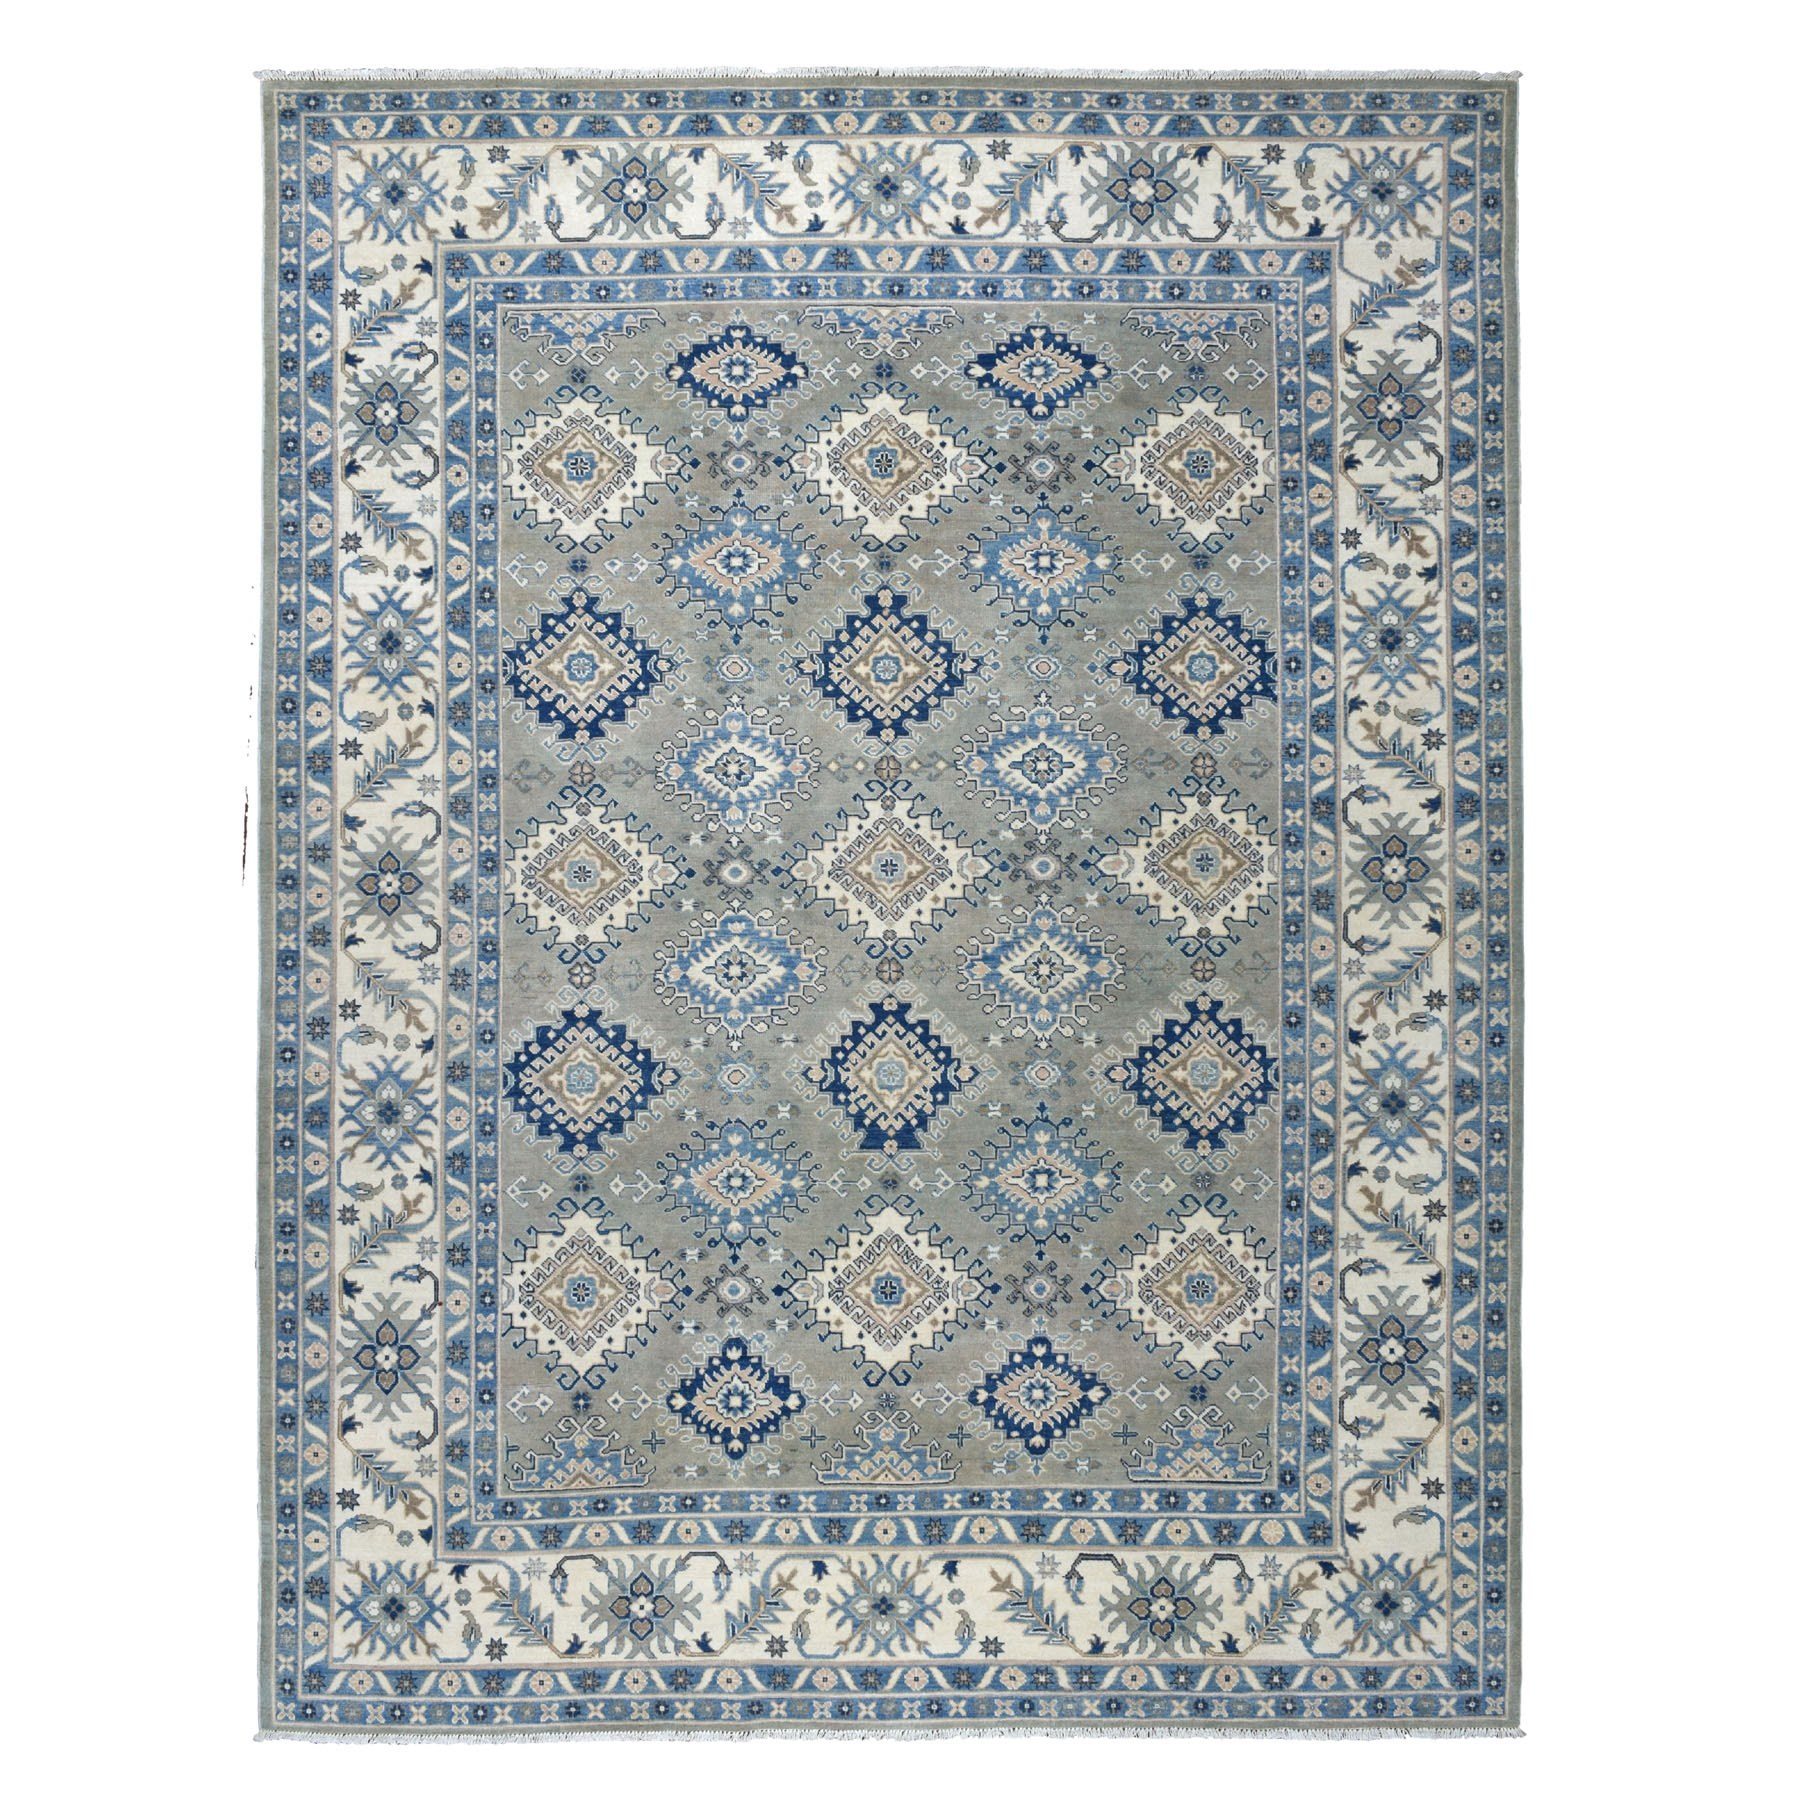 "8'10""X11'5"" Gray Vintage Look Kazak Geometric Design Pure Wool Hand Knotted Oriental Rug moaebd9b"